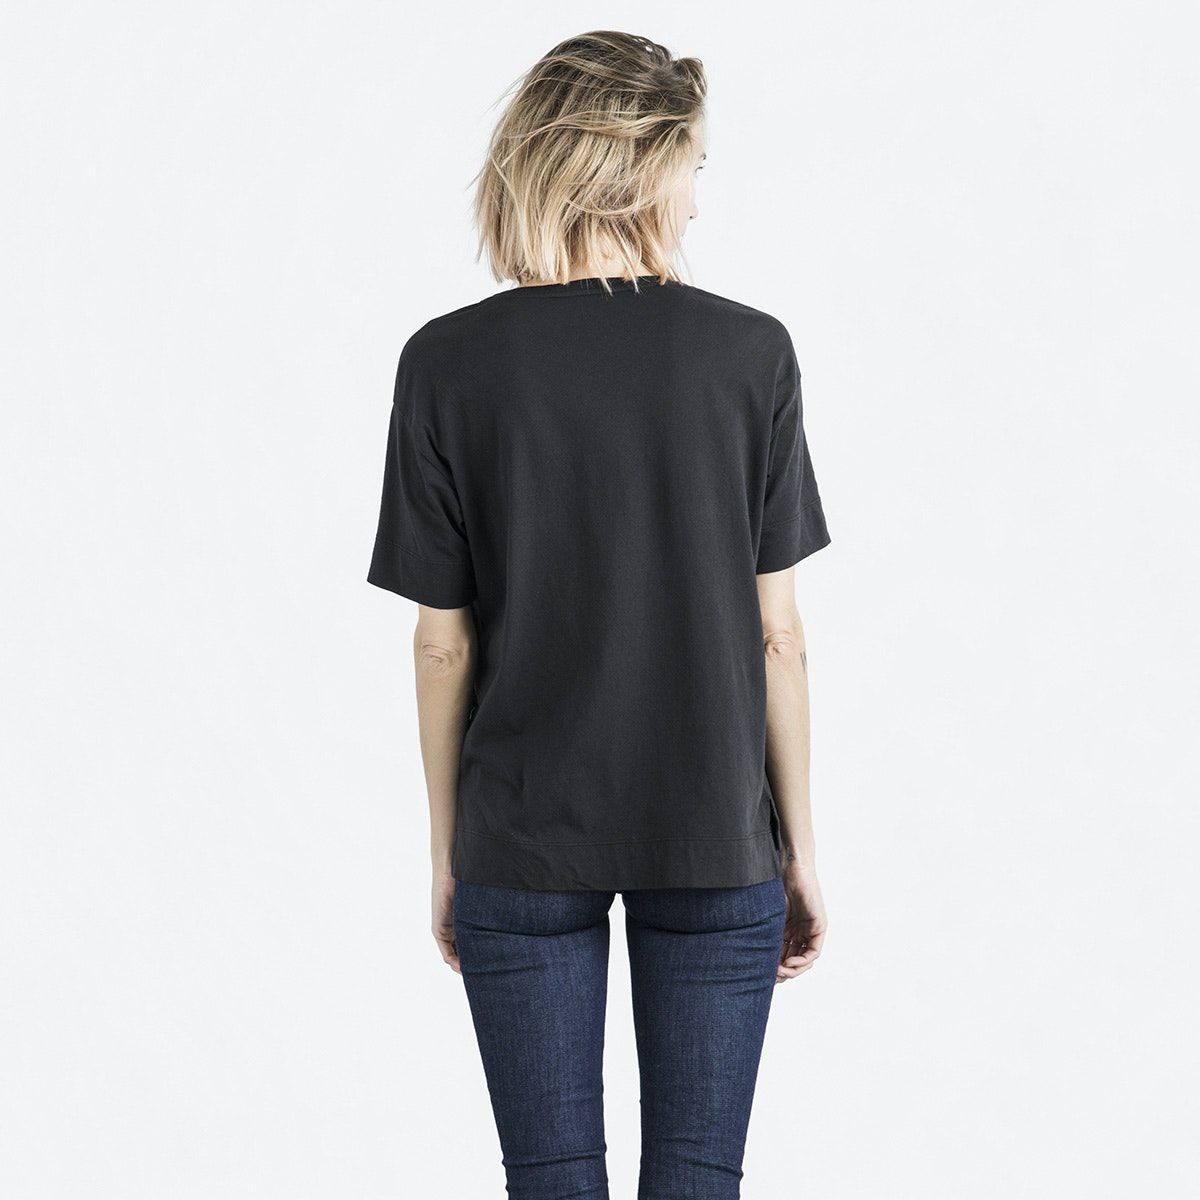 Women's Cotton Drop-Shoulder Tee | Everlane